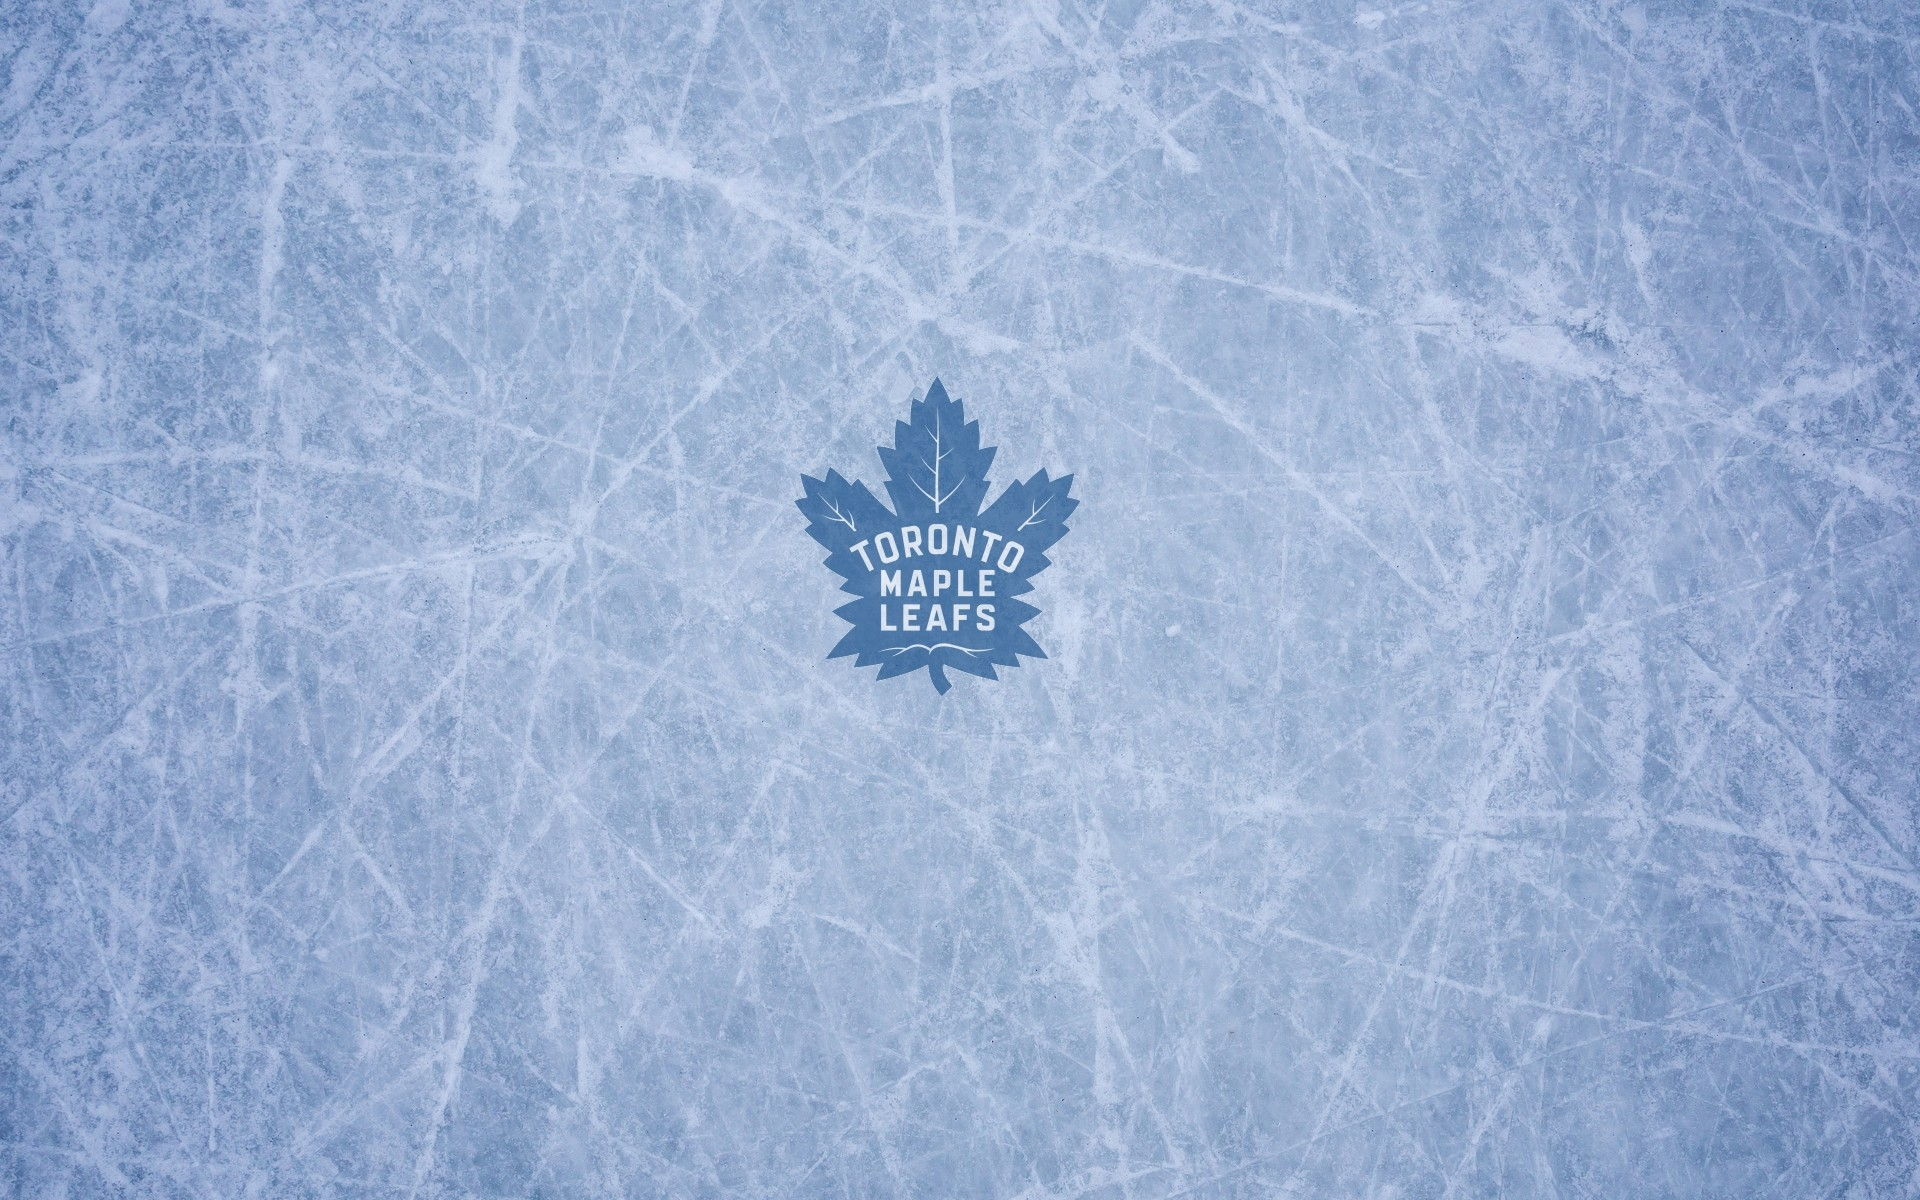 1920x1200 Toronto Maple Leafs – Logos Download